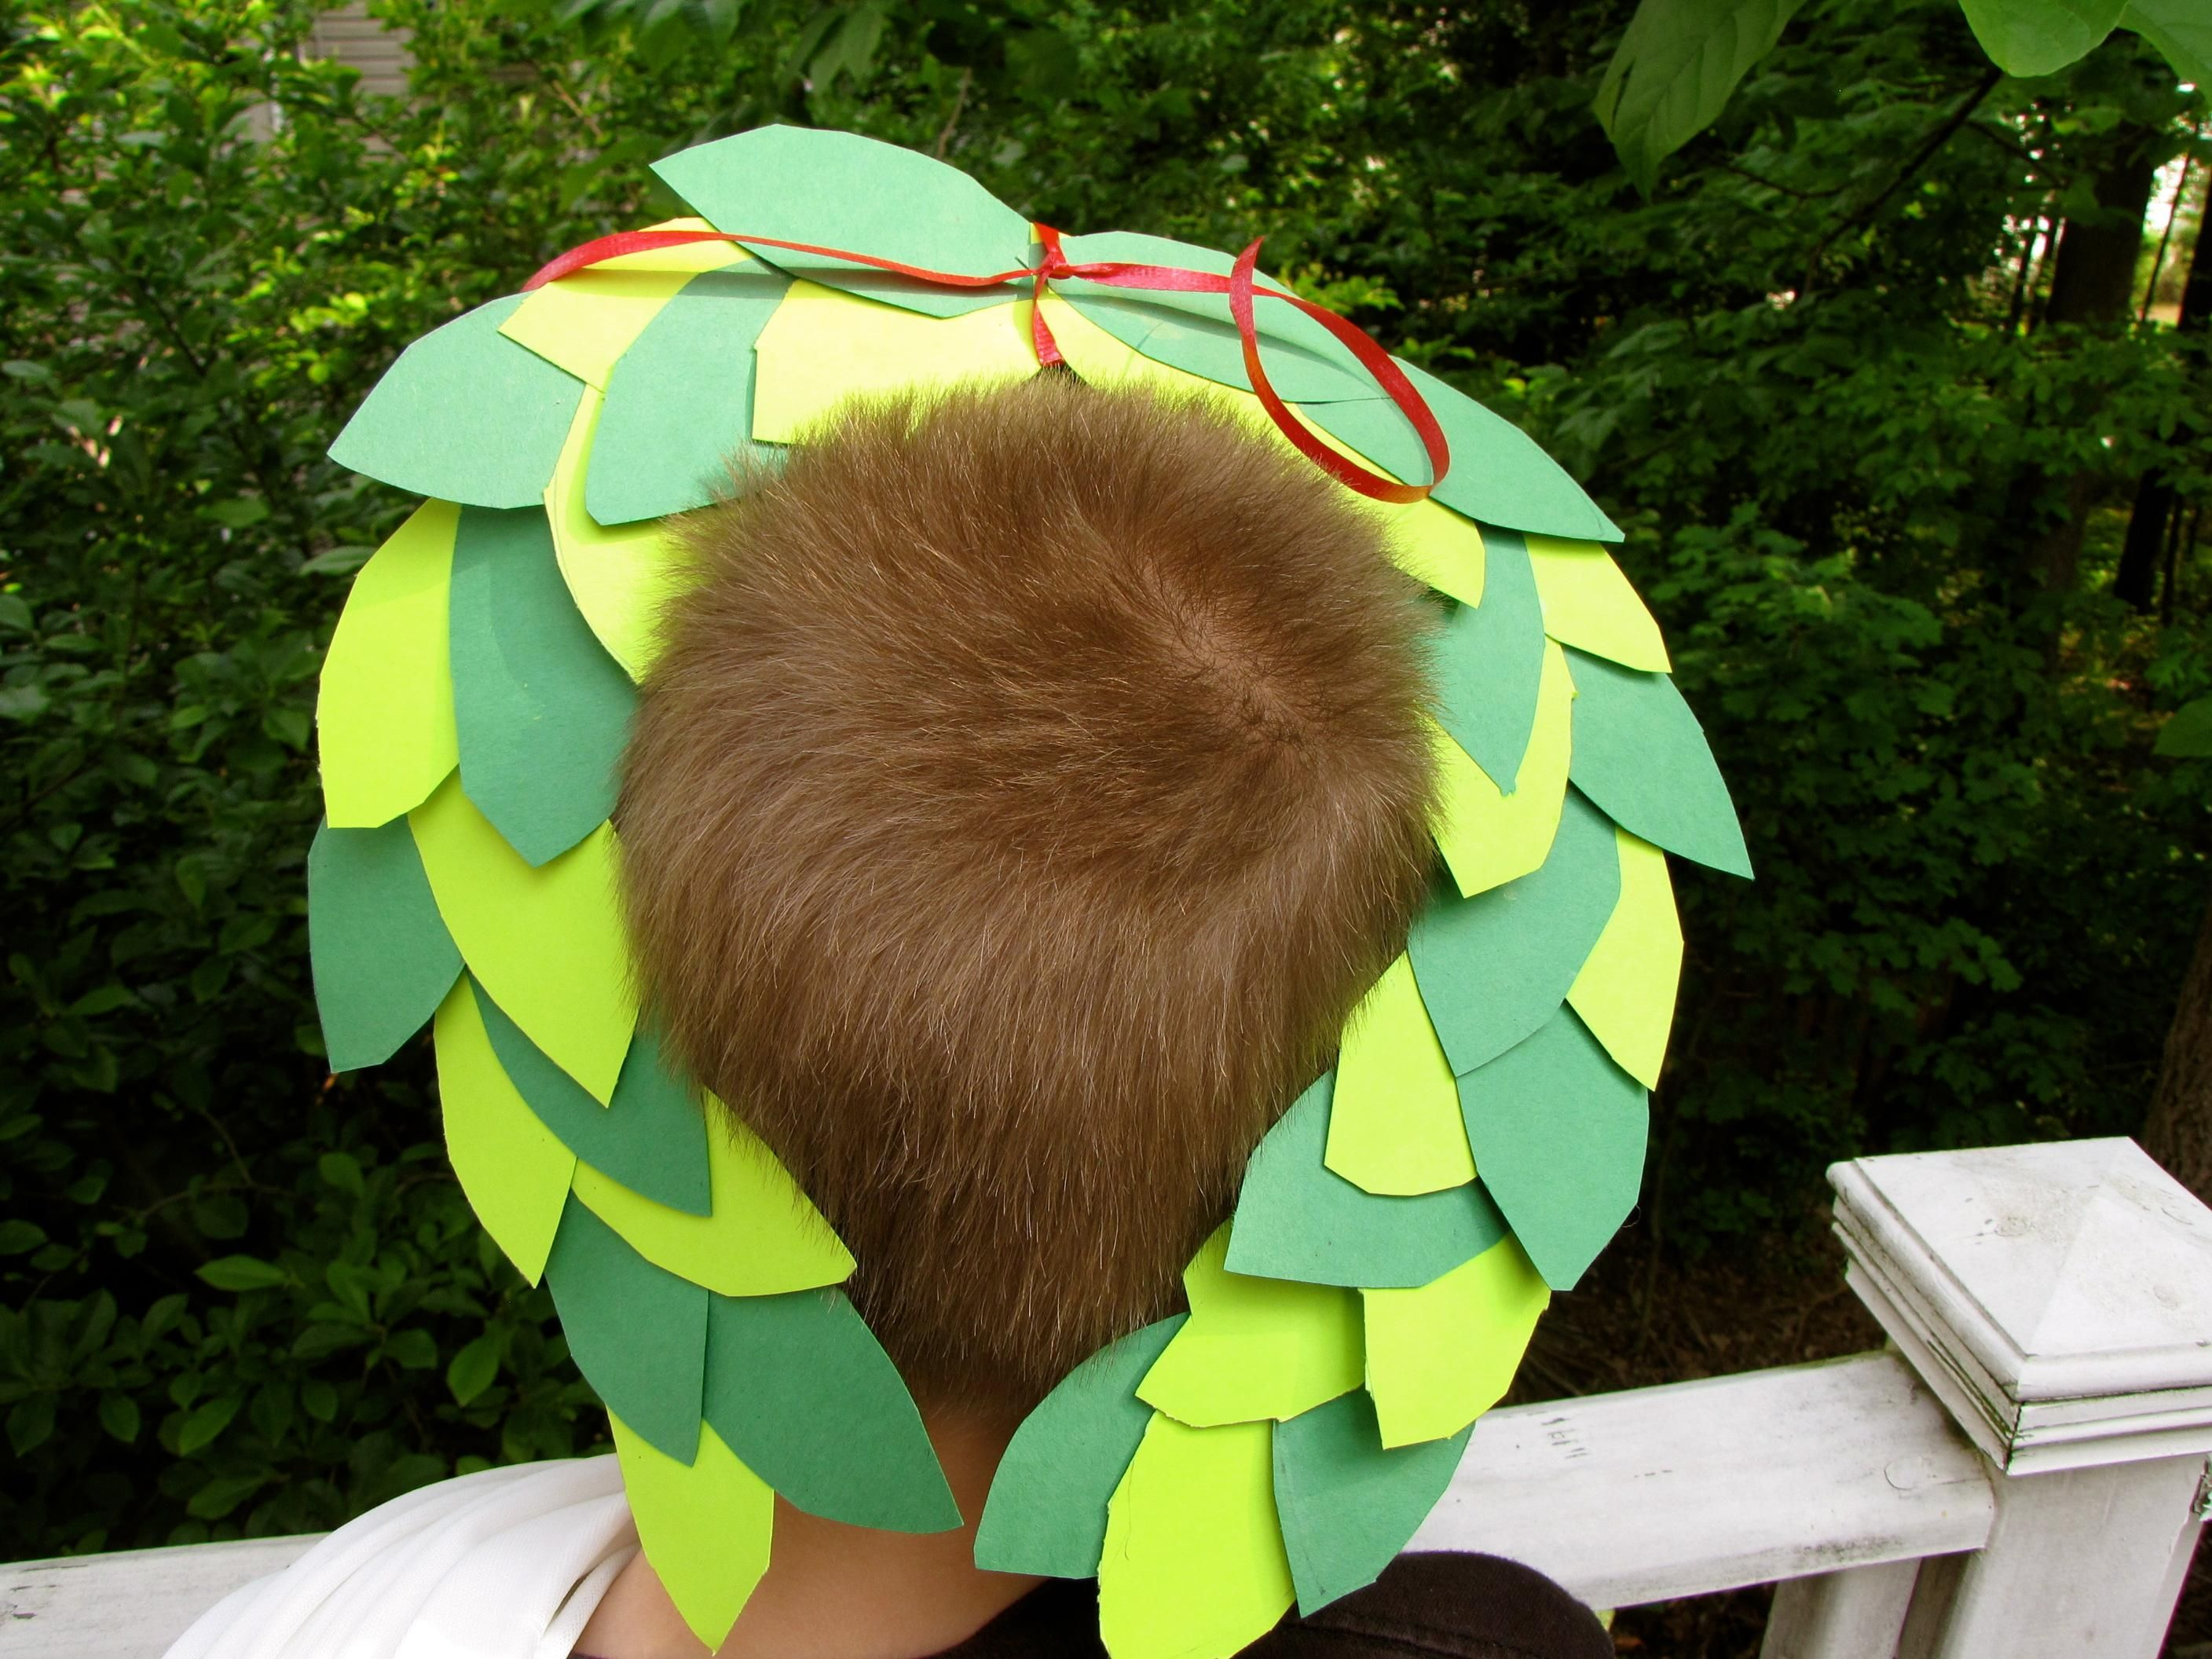 DIY Kids Crafts : DIY Olympic Laurel Wreath Crown Craft | DIY Kids ...